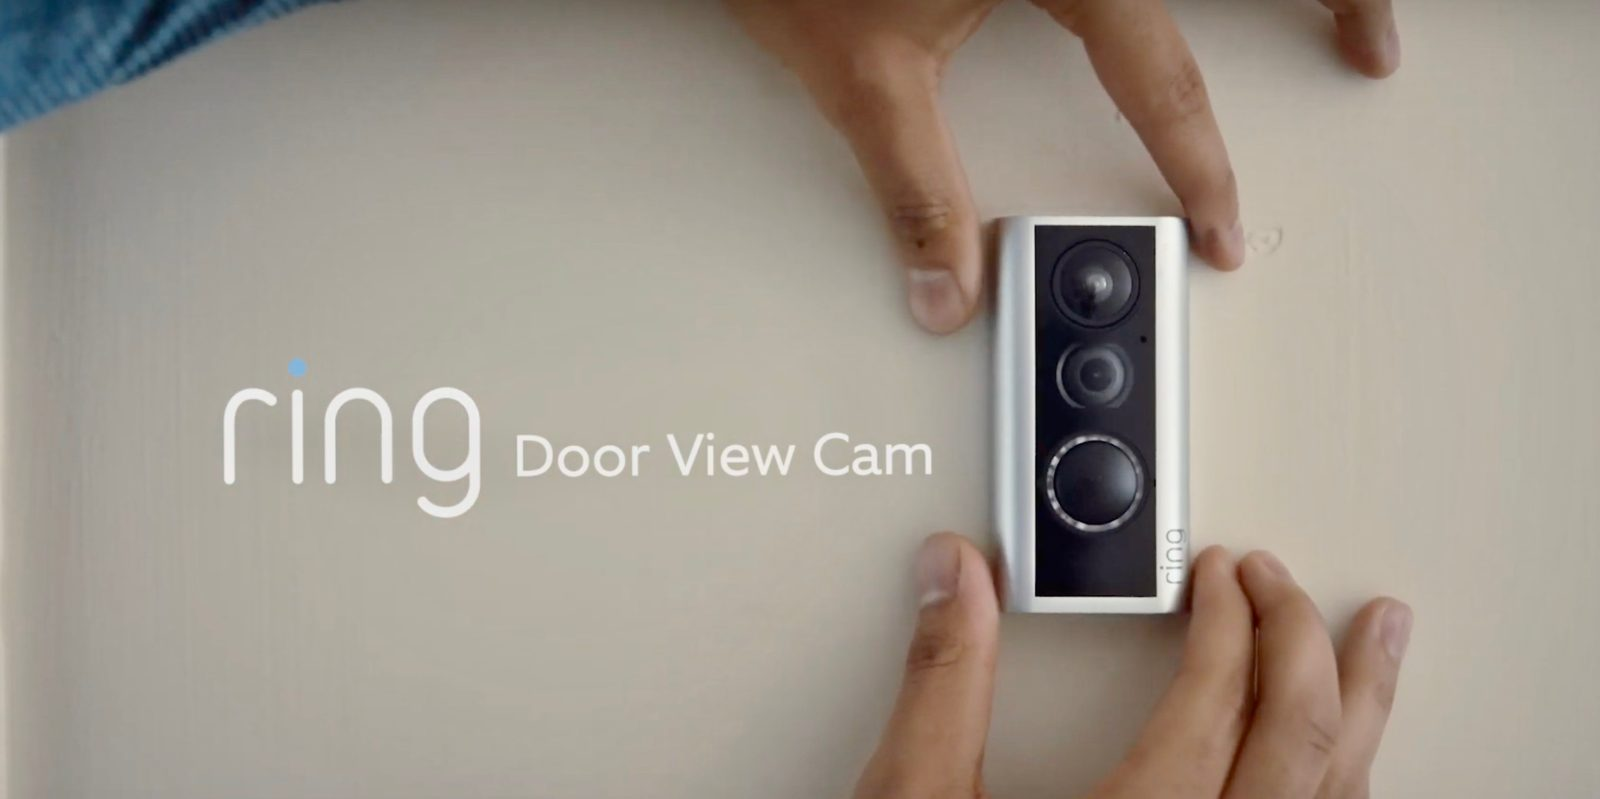 Ring unveils Door View Cam & more at CES 2019 - 9to5Toys